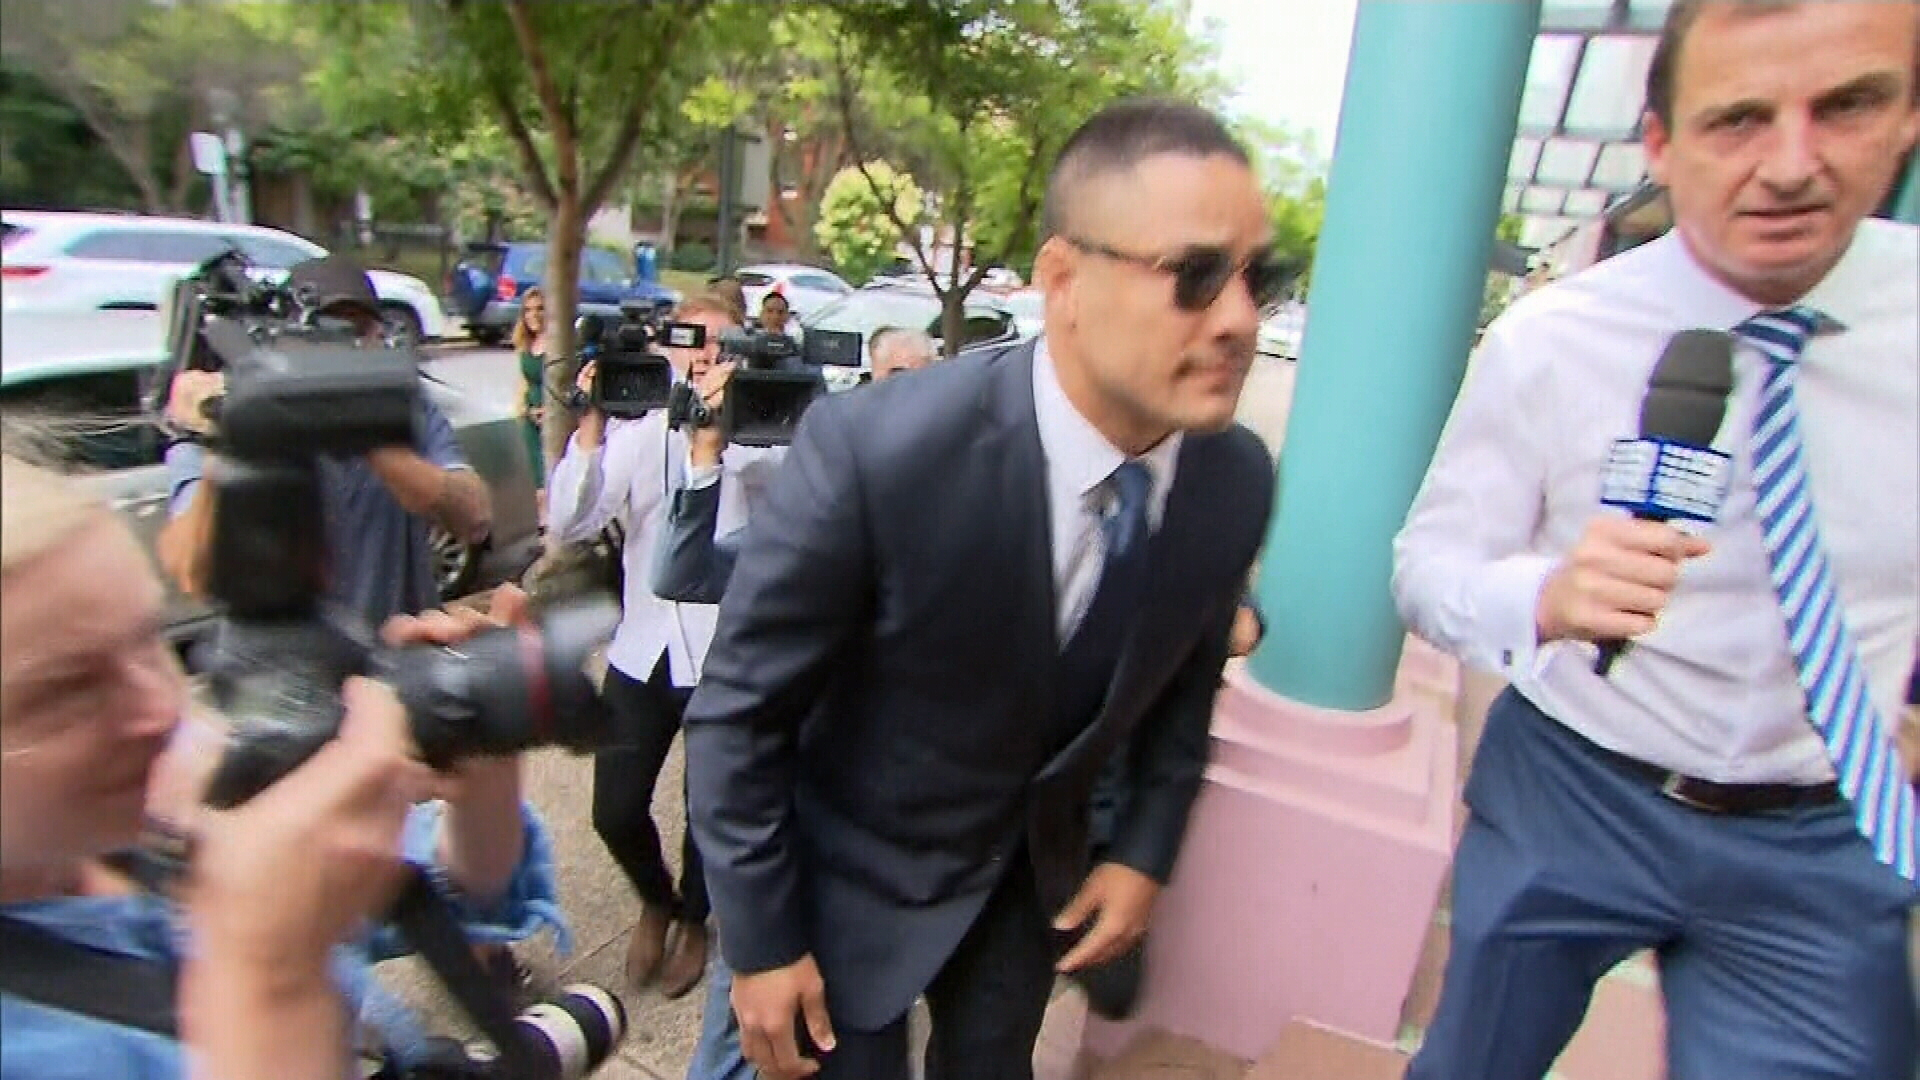 Hayne pleads not guilty to sexual assault charges